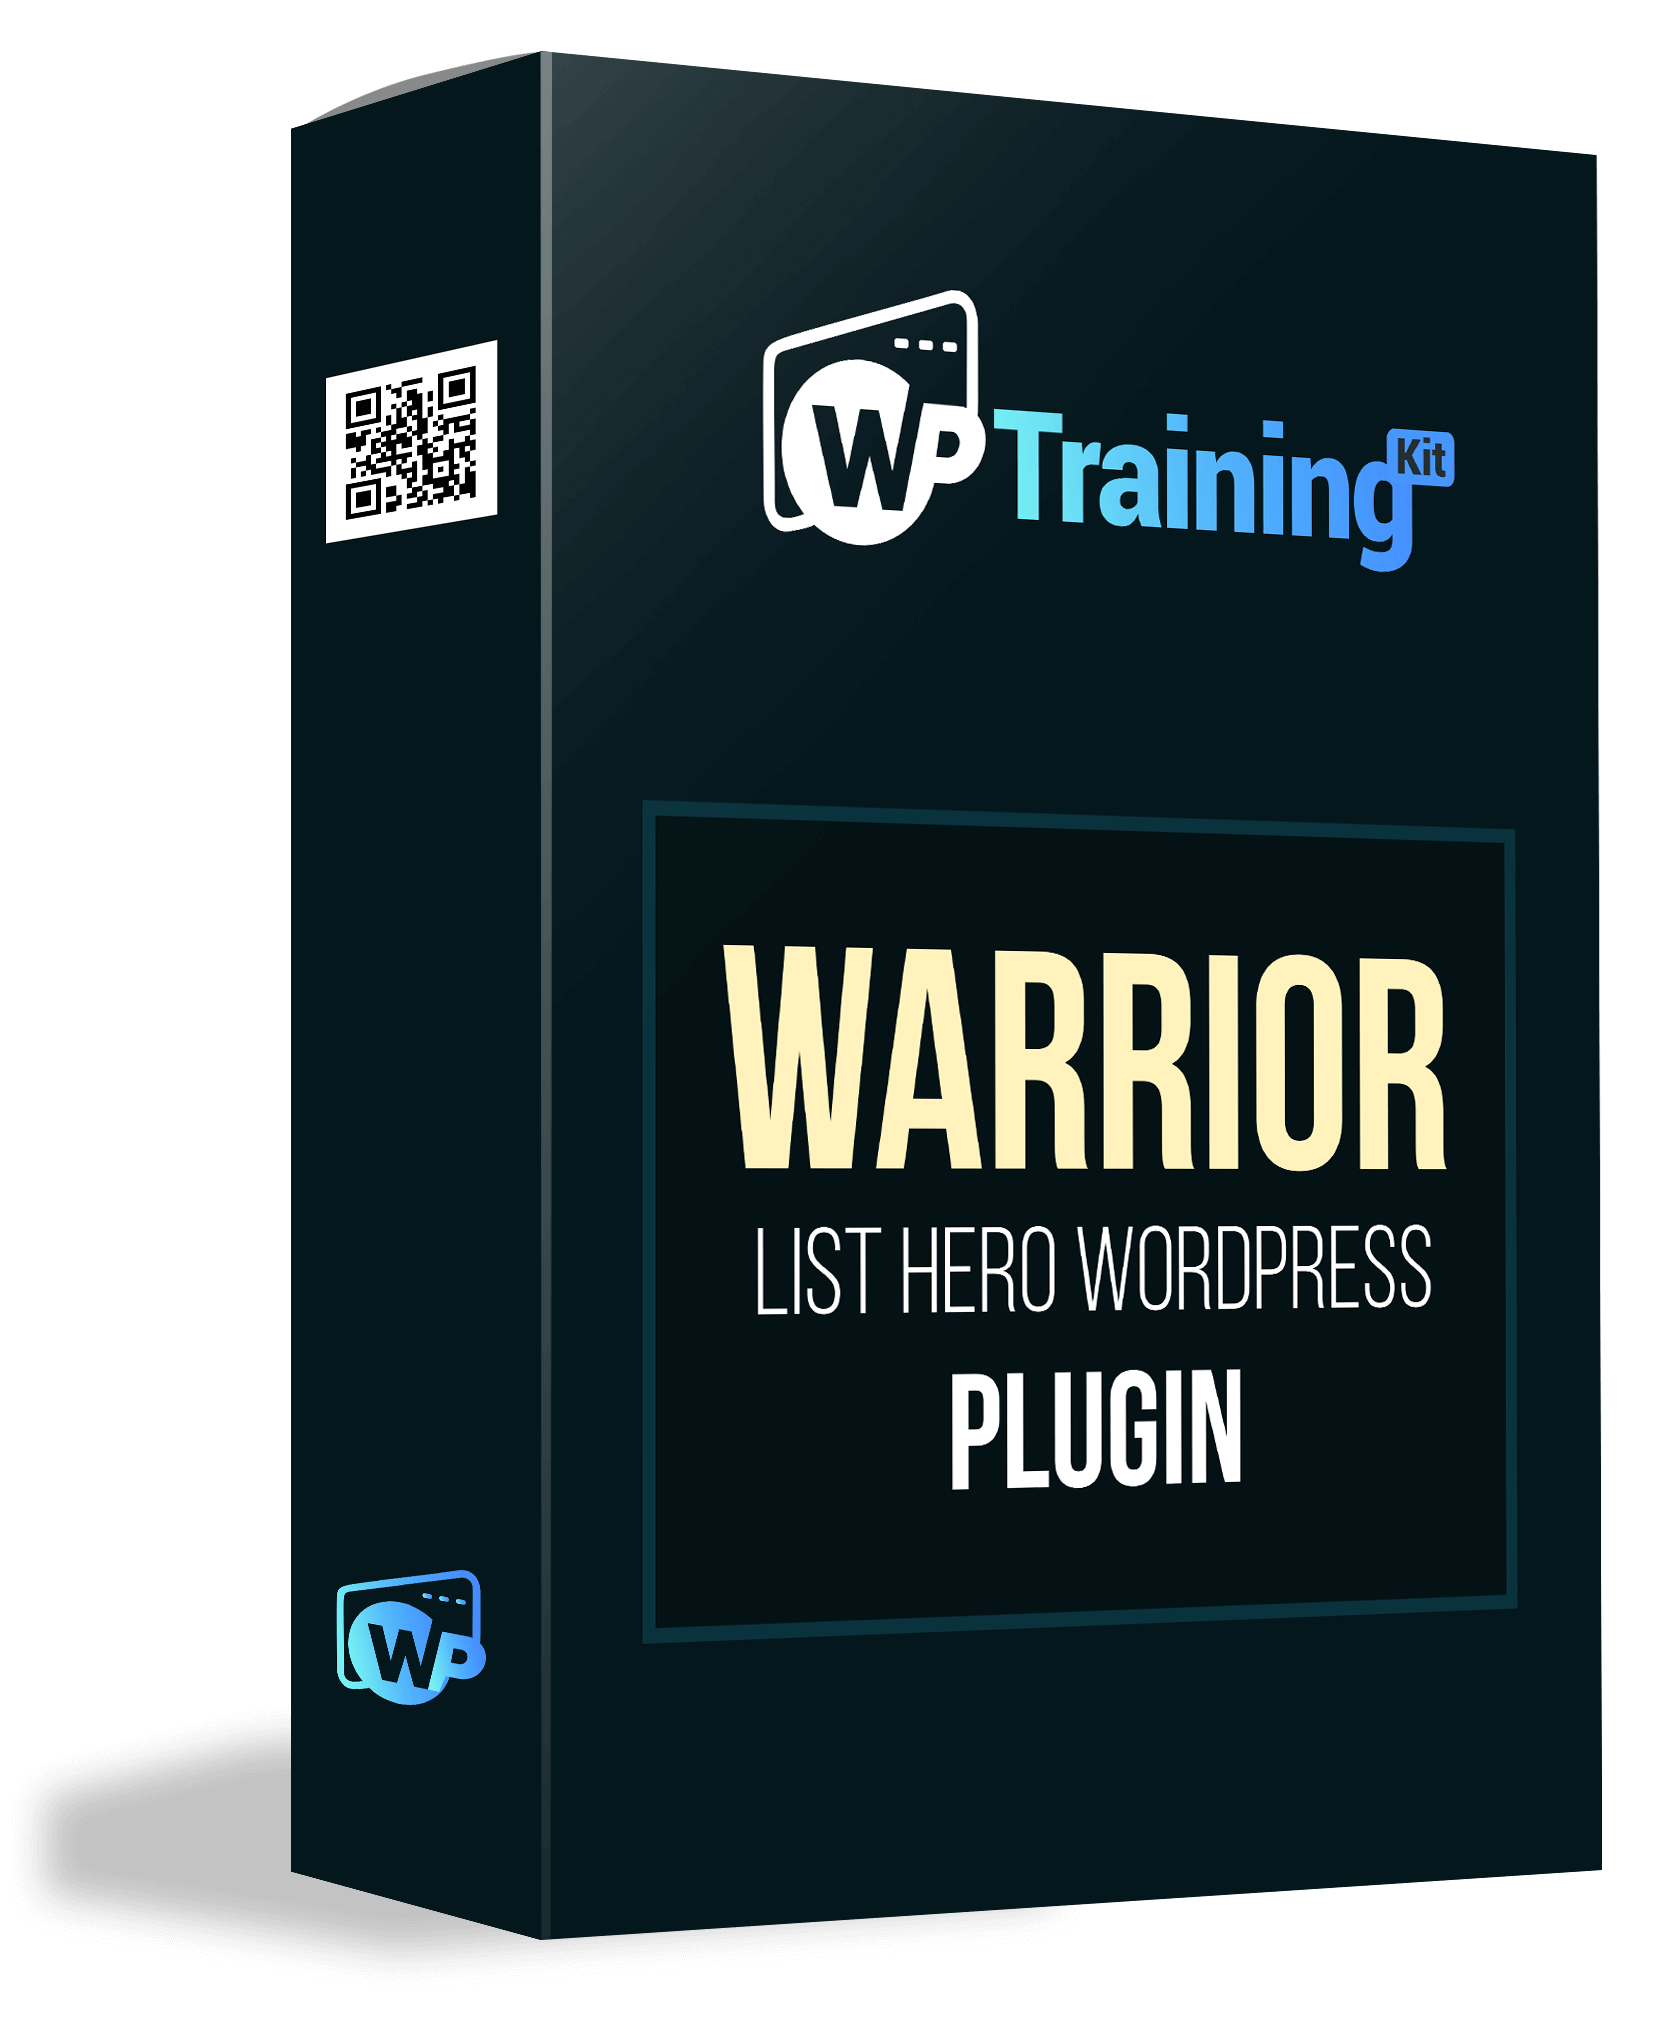 Bonus 6. Warrior List Hero WordPress Plugin Box Design